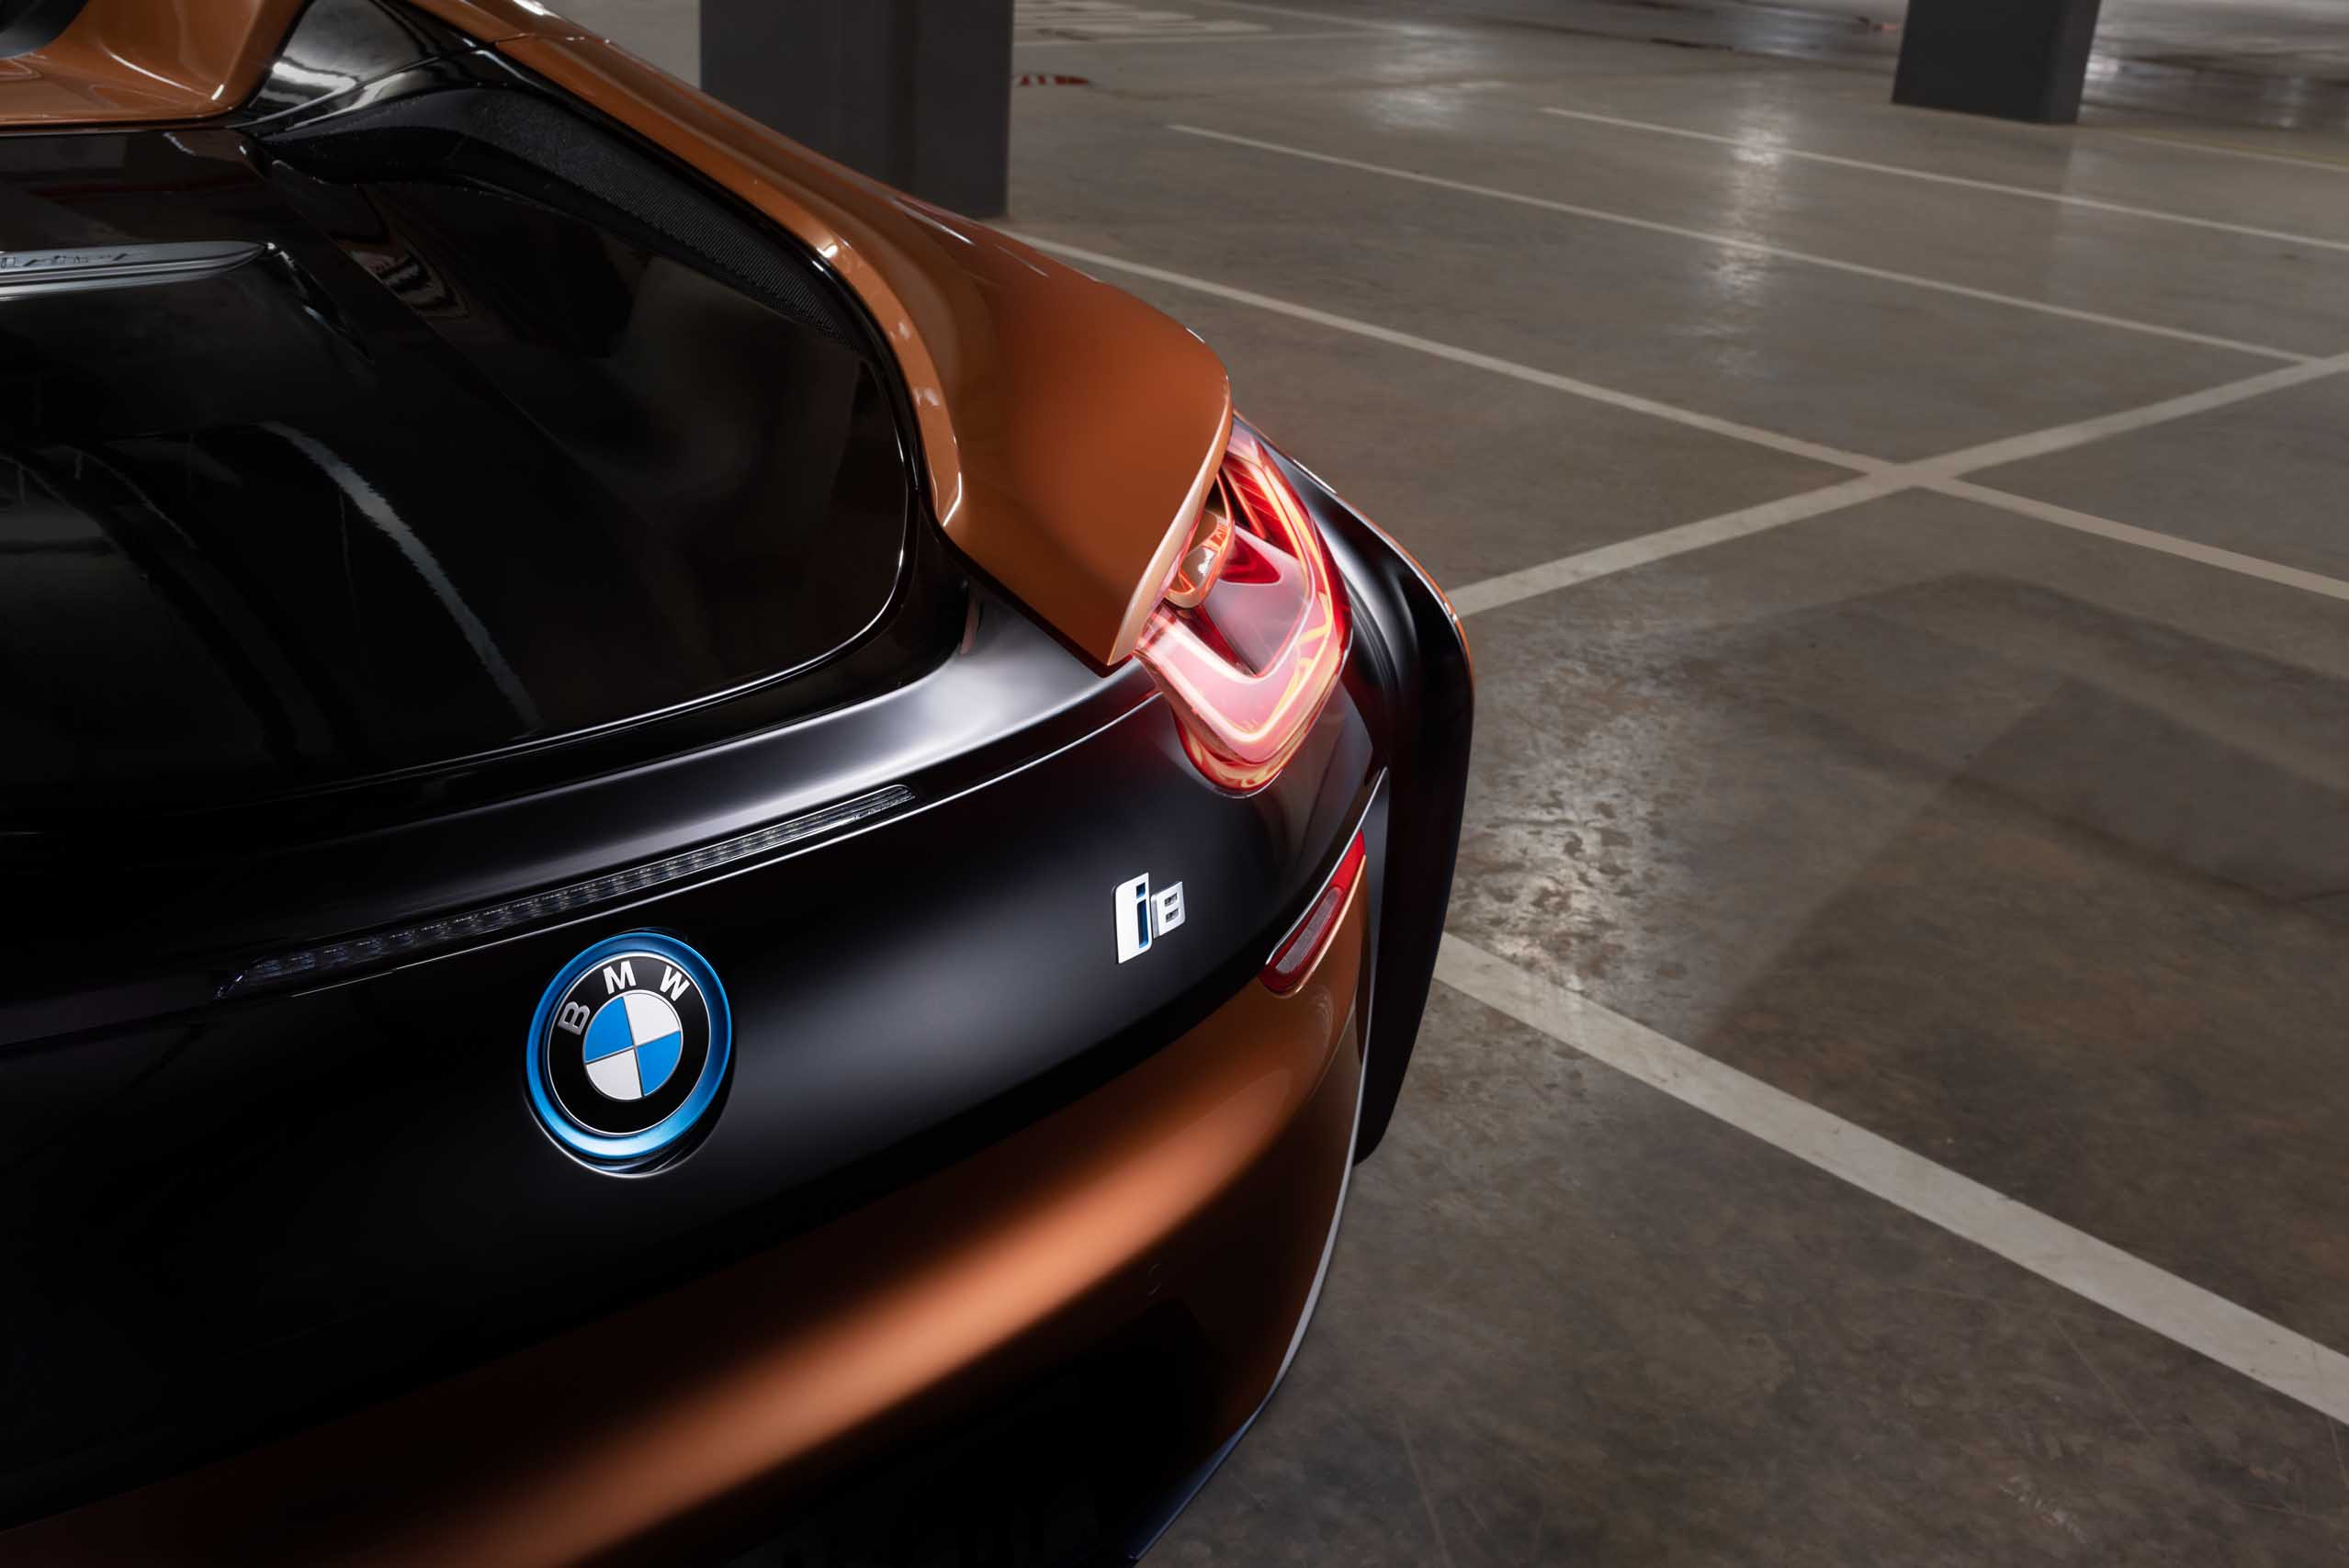 2018 Bmw I8 Roadster Rear View Showing The I8 And Bmw Badge Driven